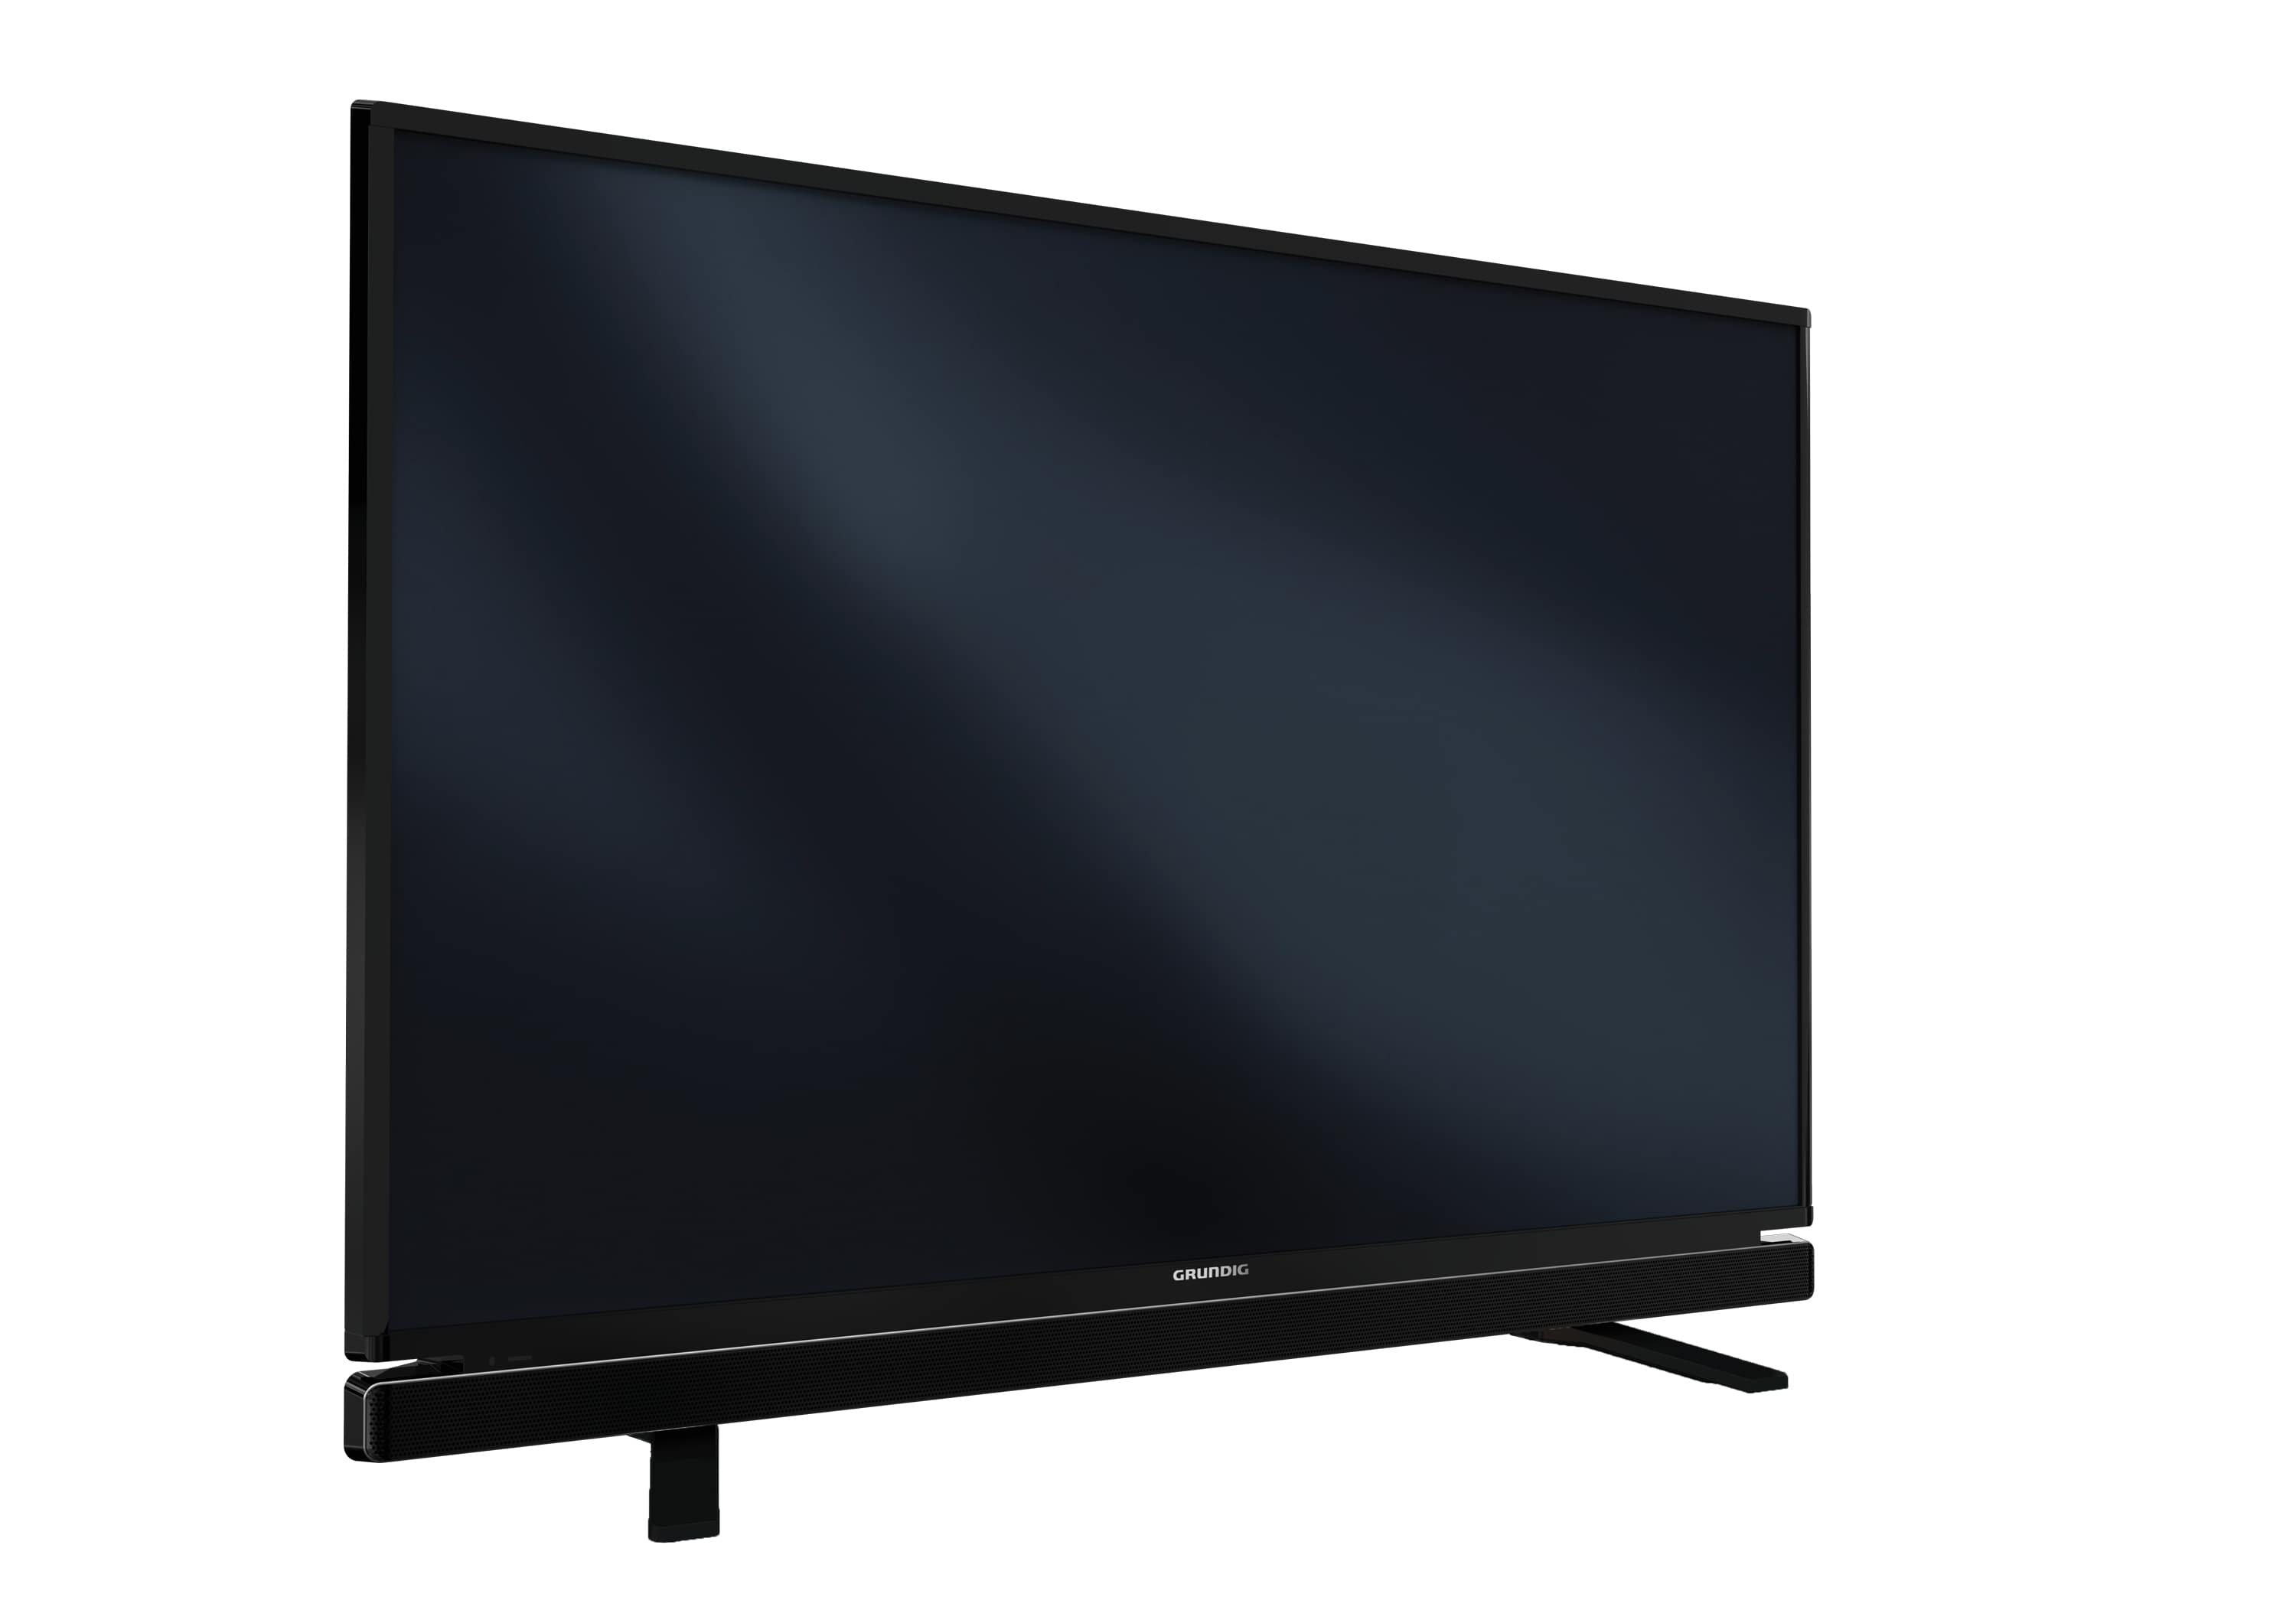 tv ger te und fernseher 30 35 zoll bei expert technomarkt. Black Bedroom Furniture Sets. Home Design Ideas